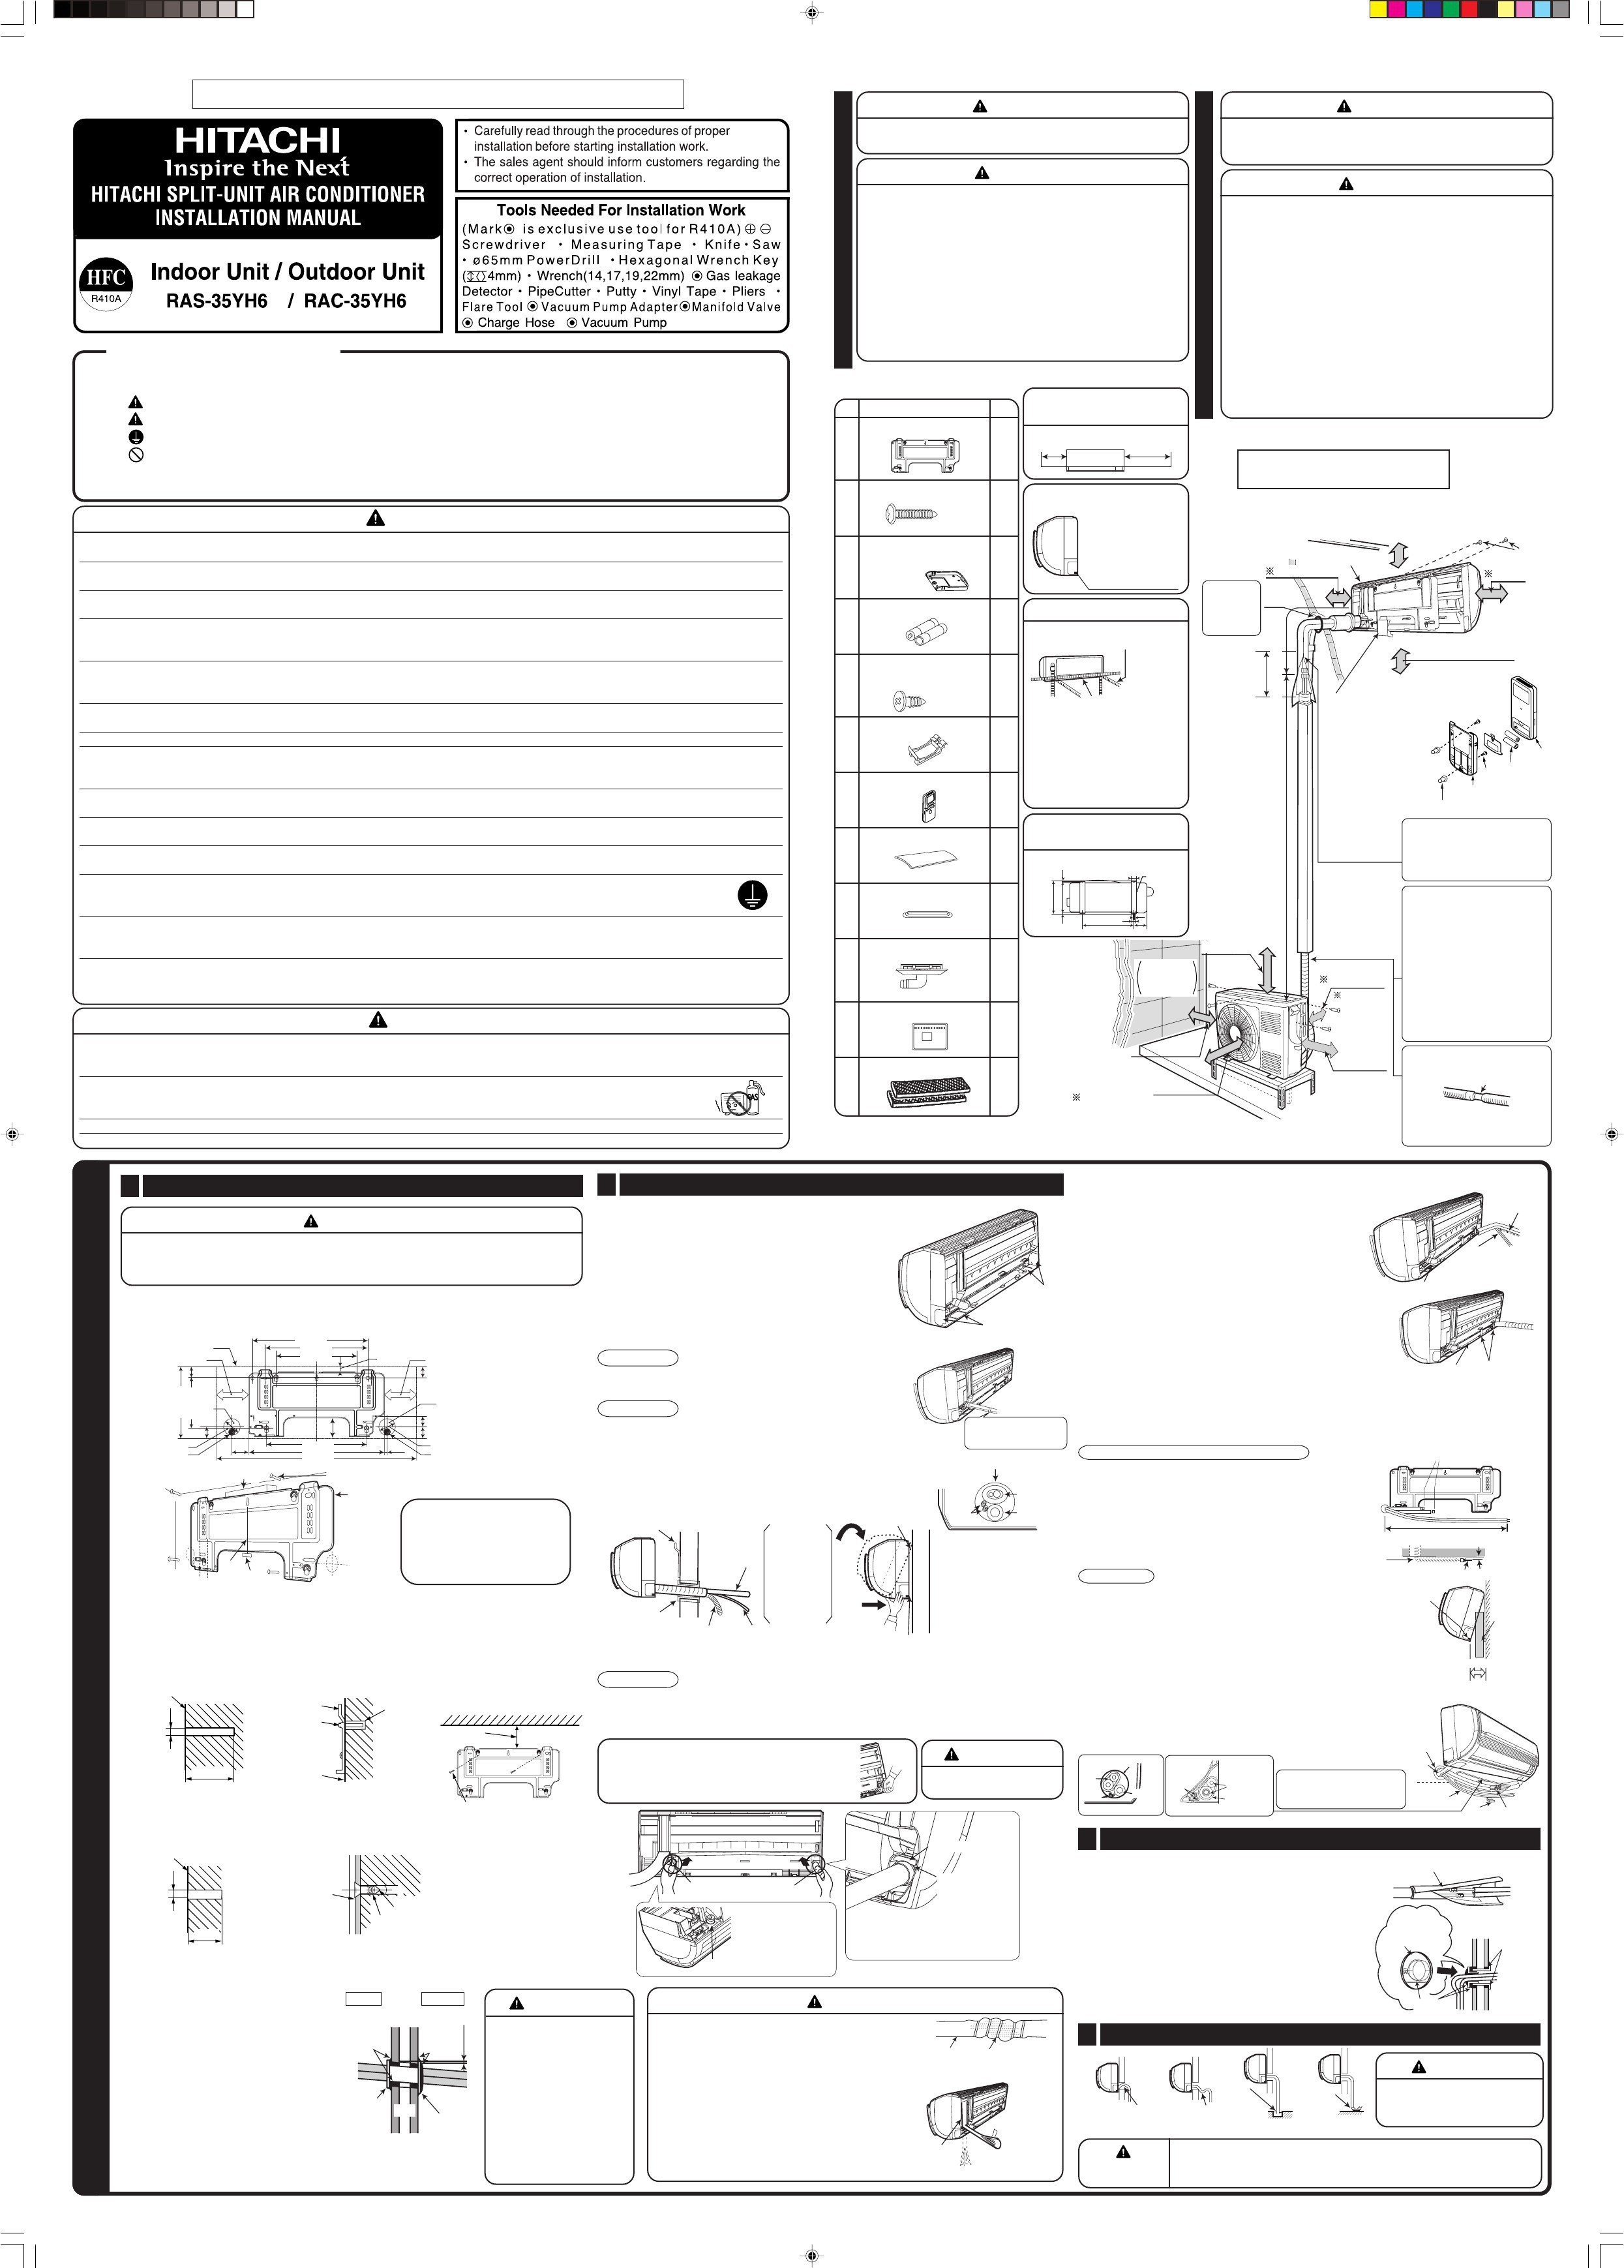 air conditioner wiring diagram pdf Collection-Wiring Diagram Ac Gas New Wiring Diagram Indoor Ac Fresh Air Conditioner Wiring Diagram Pdf 16-o